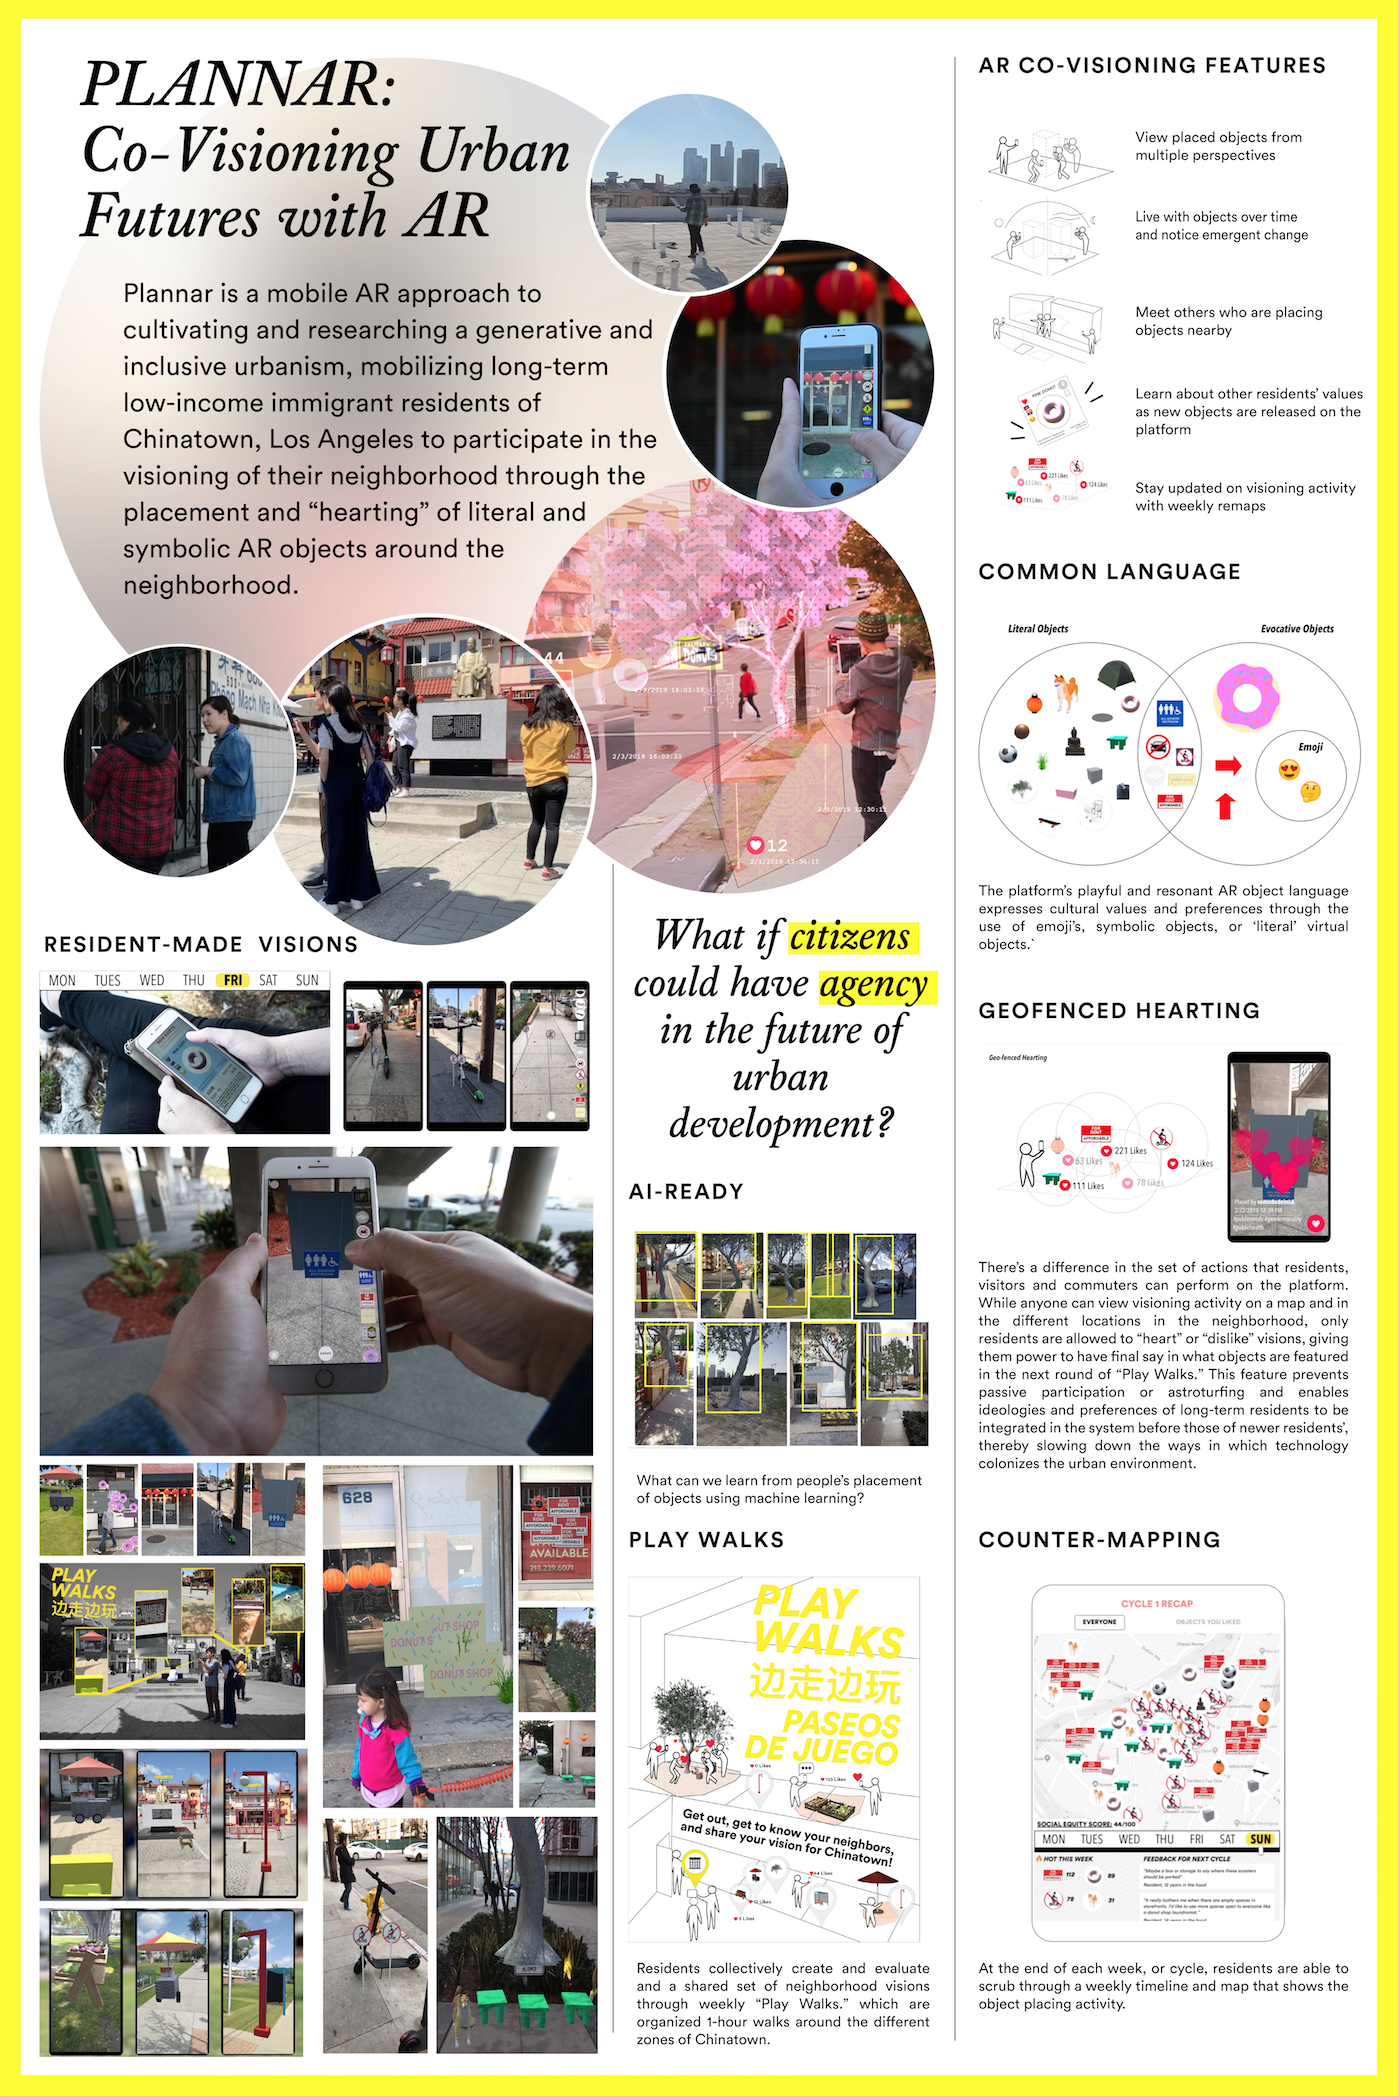 """Plannar is a mobile AR approach to cultivating an inclusive generative urbanism, specifically mobilizing long-term residents of Chinatown, Los Angeles to participate in the visioning of their neighborhood through the placement and """"hearting"""" of literal and symbolic virtual objects around the neighborhood."""